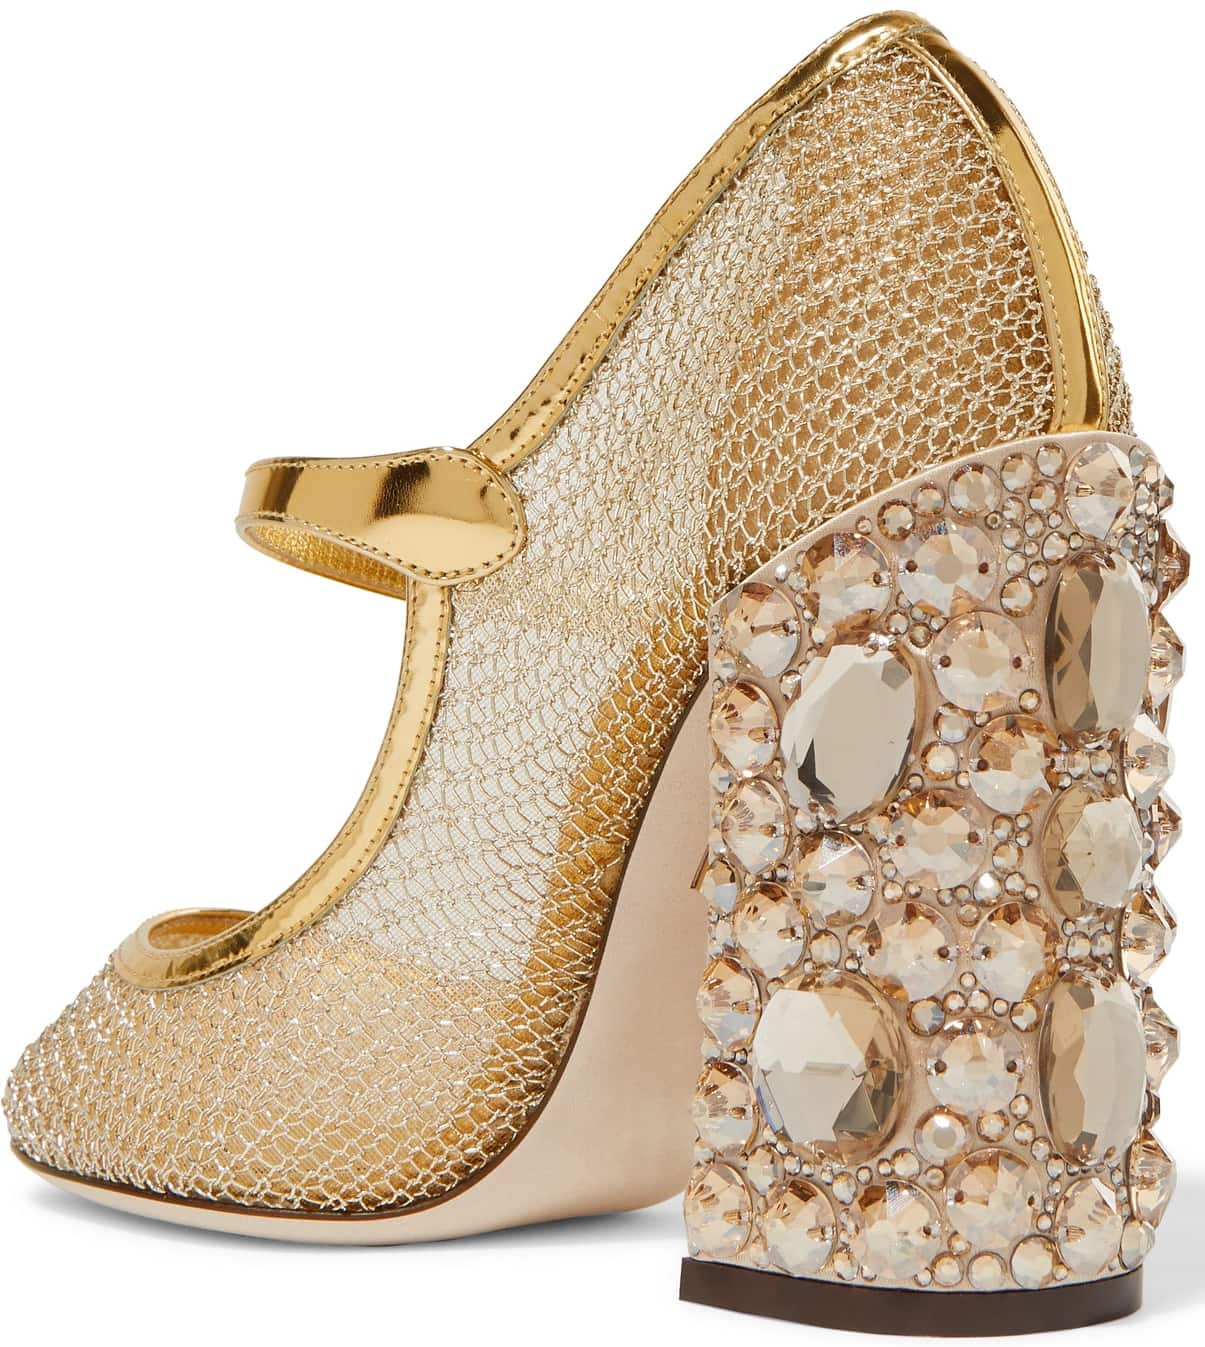 Dolce & Gabbana's Mary Jane pumps have been made in Italy from gold mesh and are defined by a striking crystal-embellished block heel